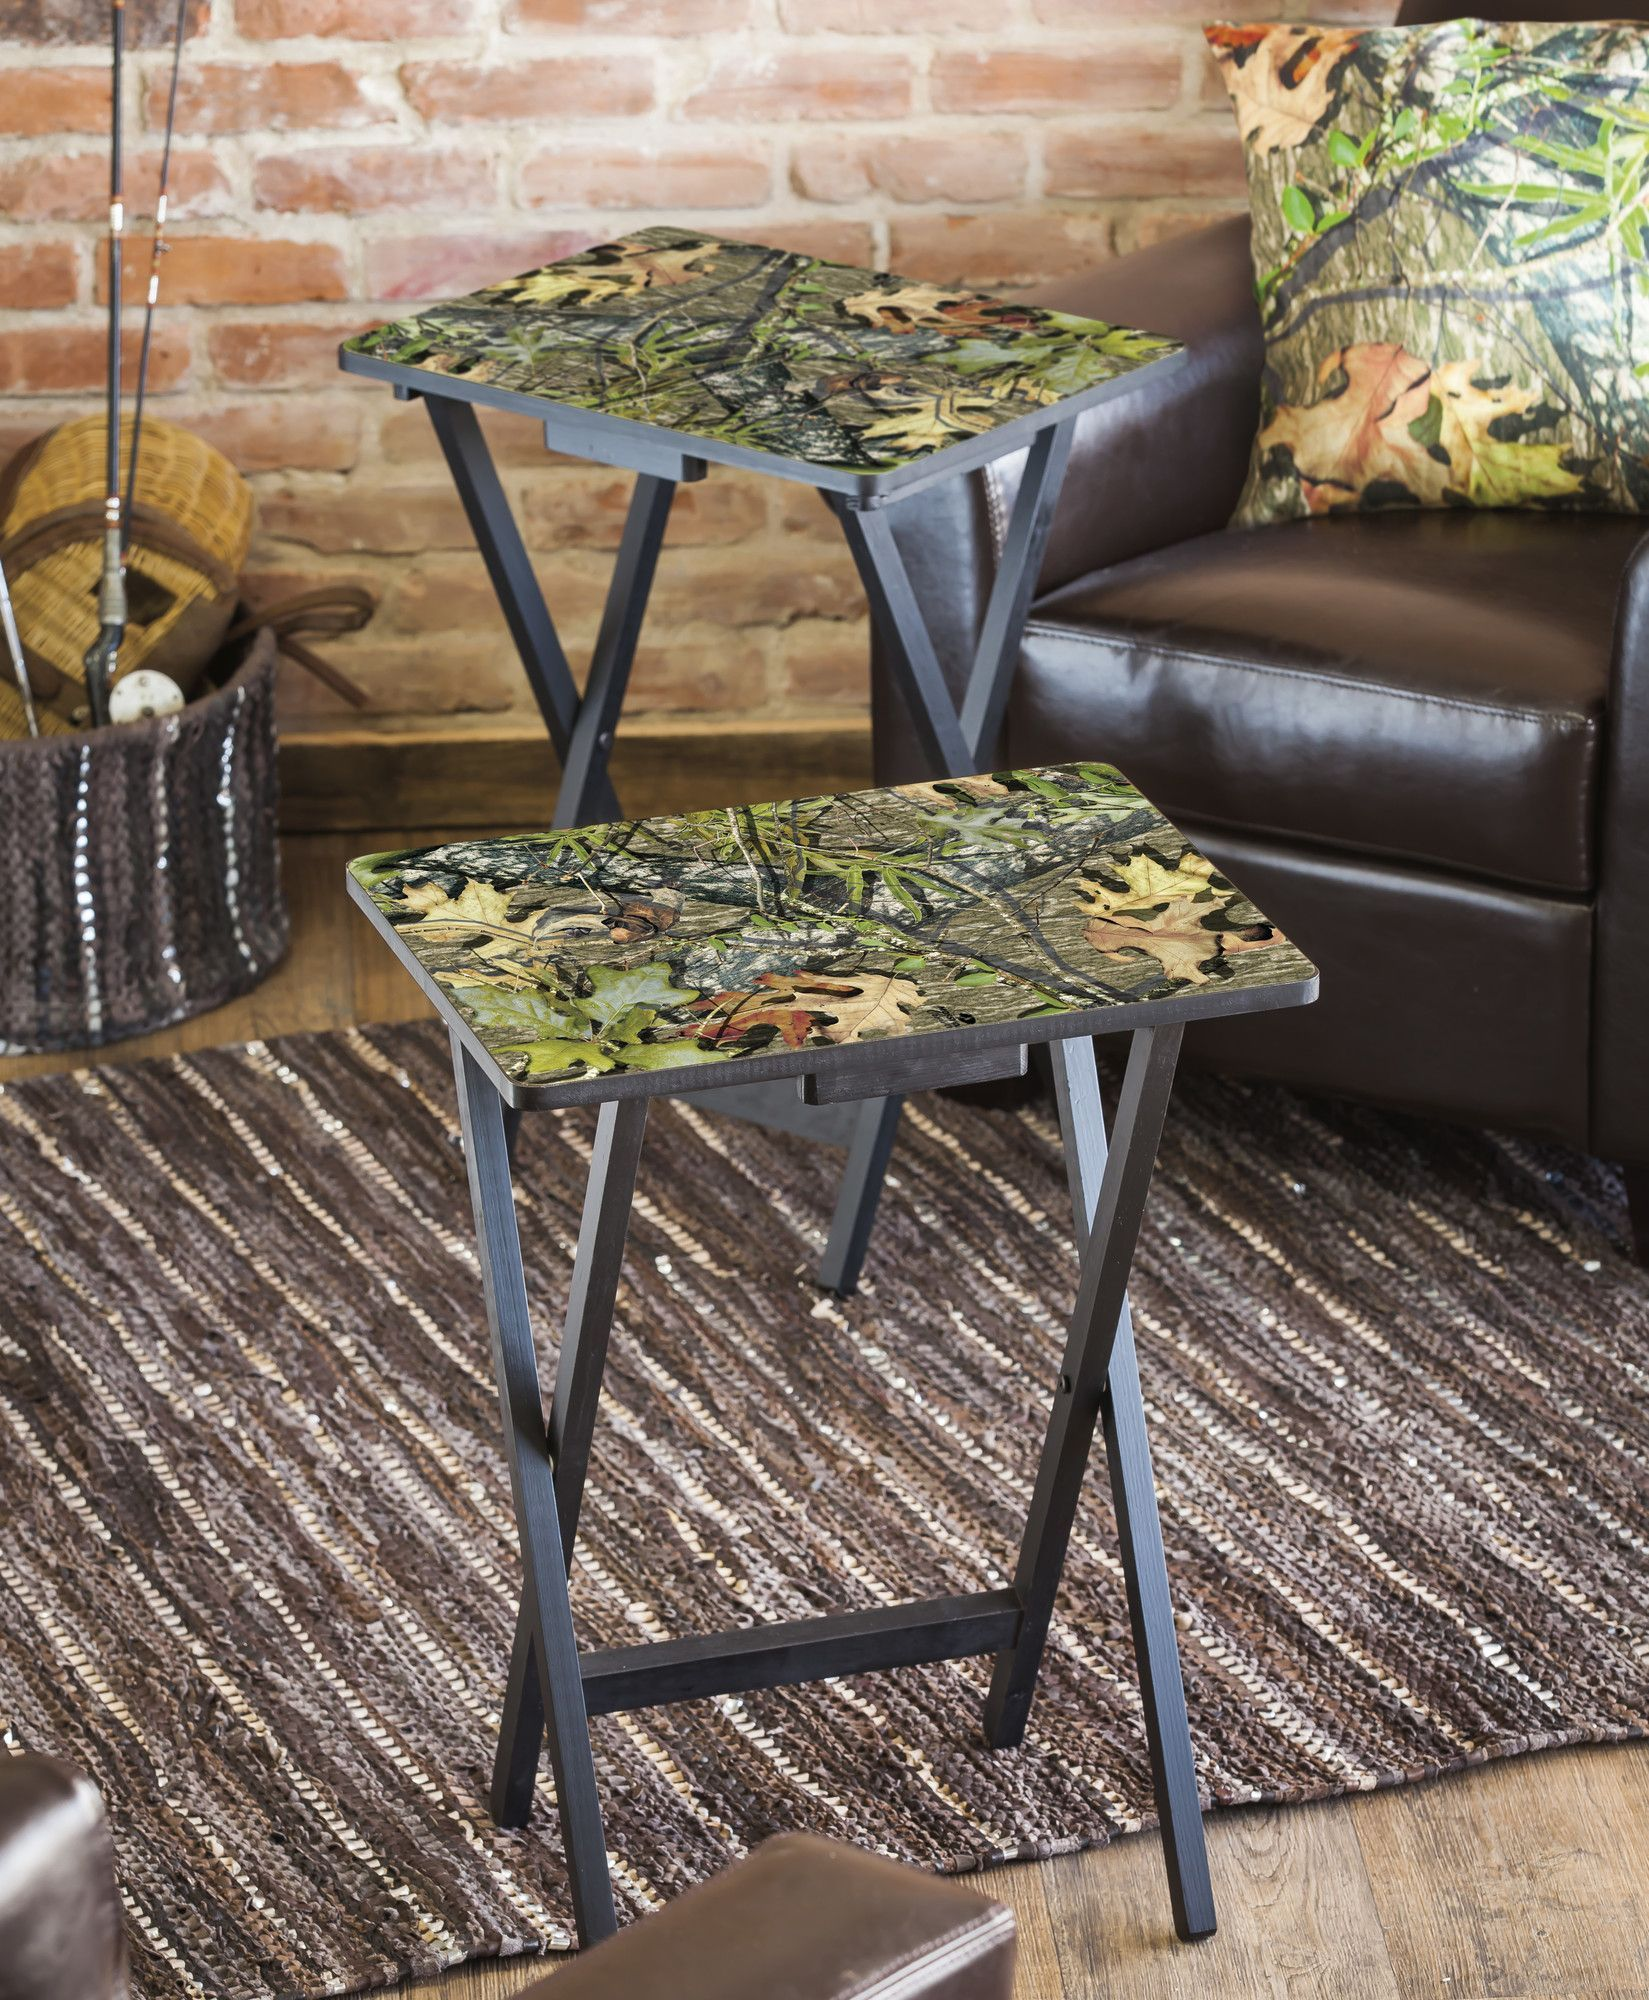 Mossy oak foldable tv tray products pinterest tv trays this mossy oak foldable side tabletv tray set of two by evergreen is perfect geotapseo Images